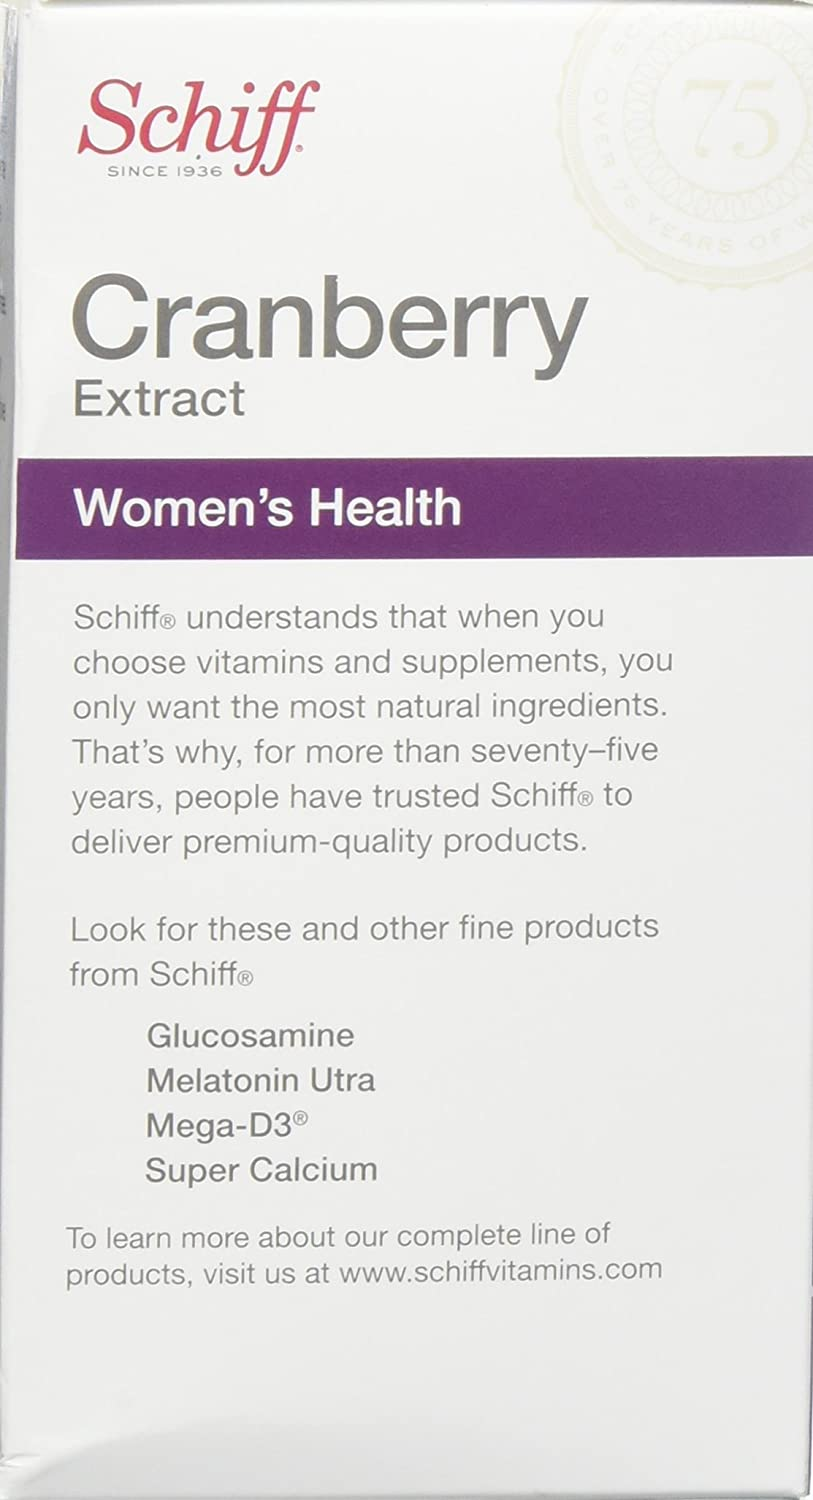 Schiff Cranberry Extract Dietary Supplement - Womens Health - Promotes a Healthy Urinary Tracy - 90 Softgels: Amazon.es: Salud y cuidado personal